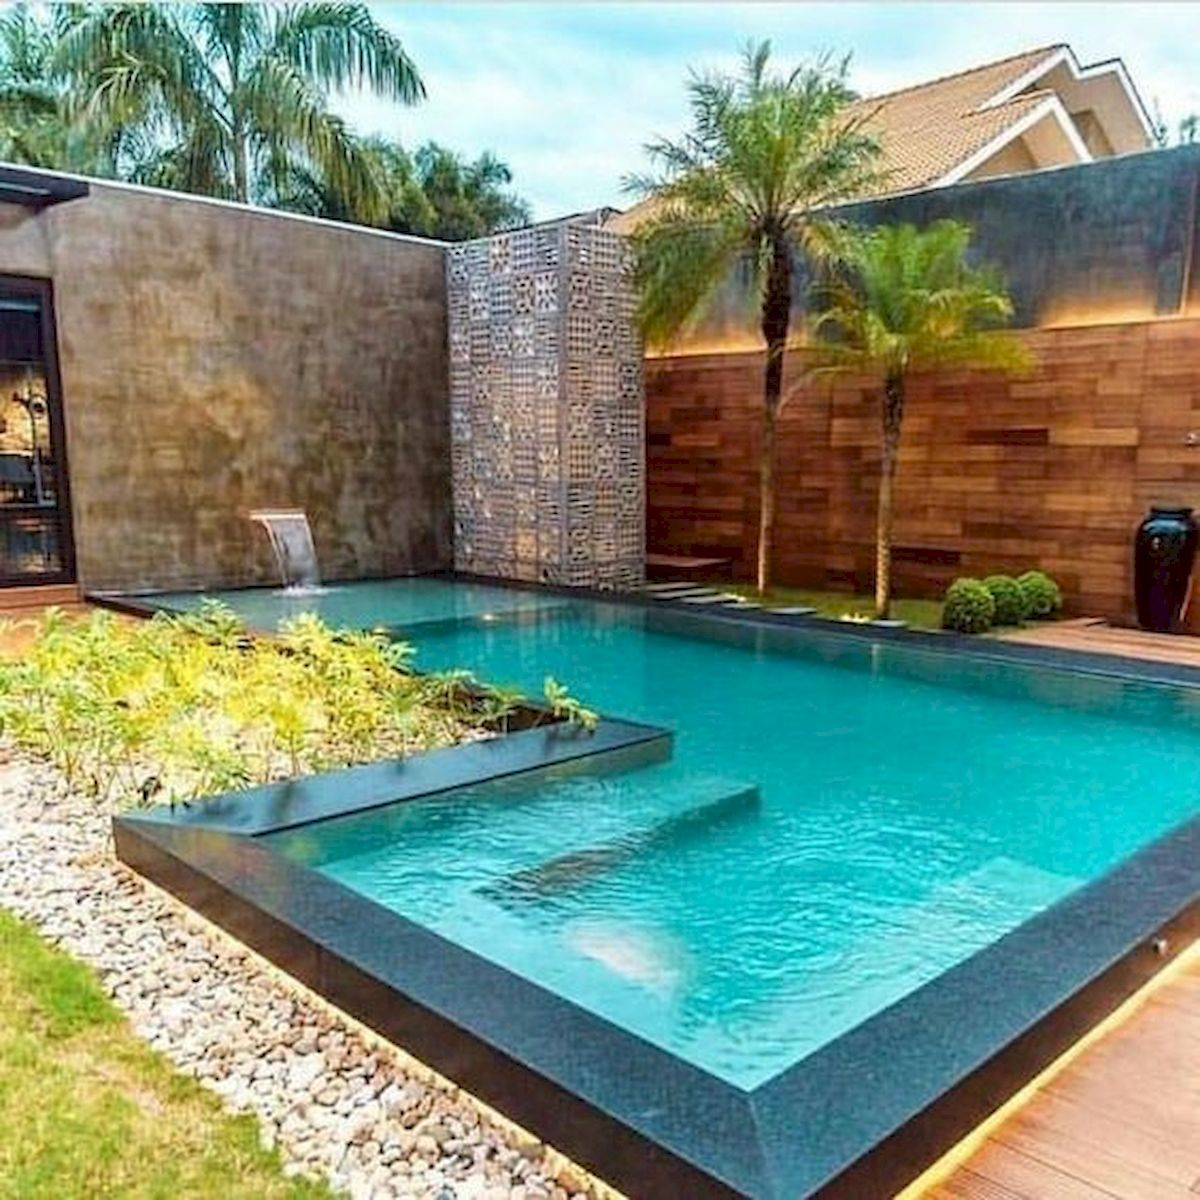 30 Awesome Backyard Swimming Pools Design Ideas Swimming Pools Backyard Small Backyard Pools Backyard Pool Designs